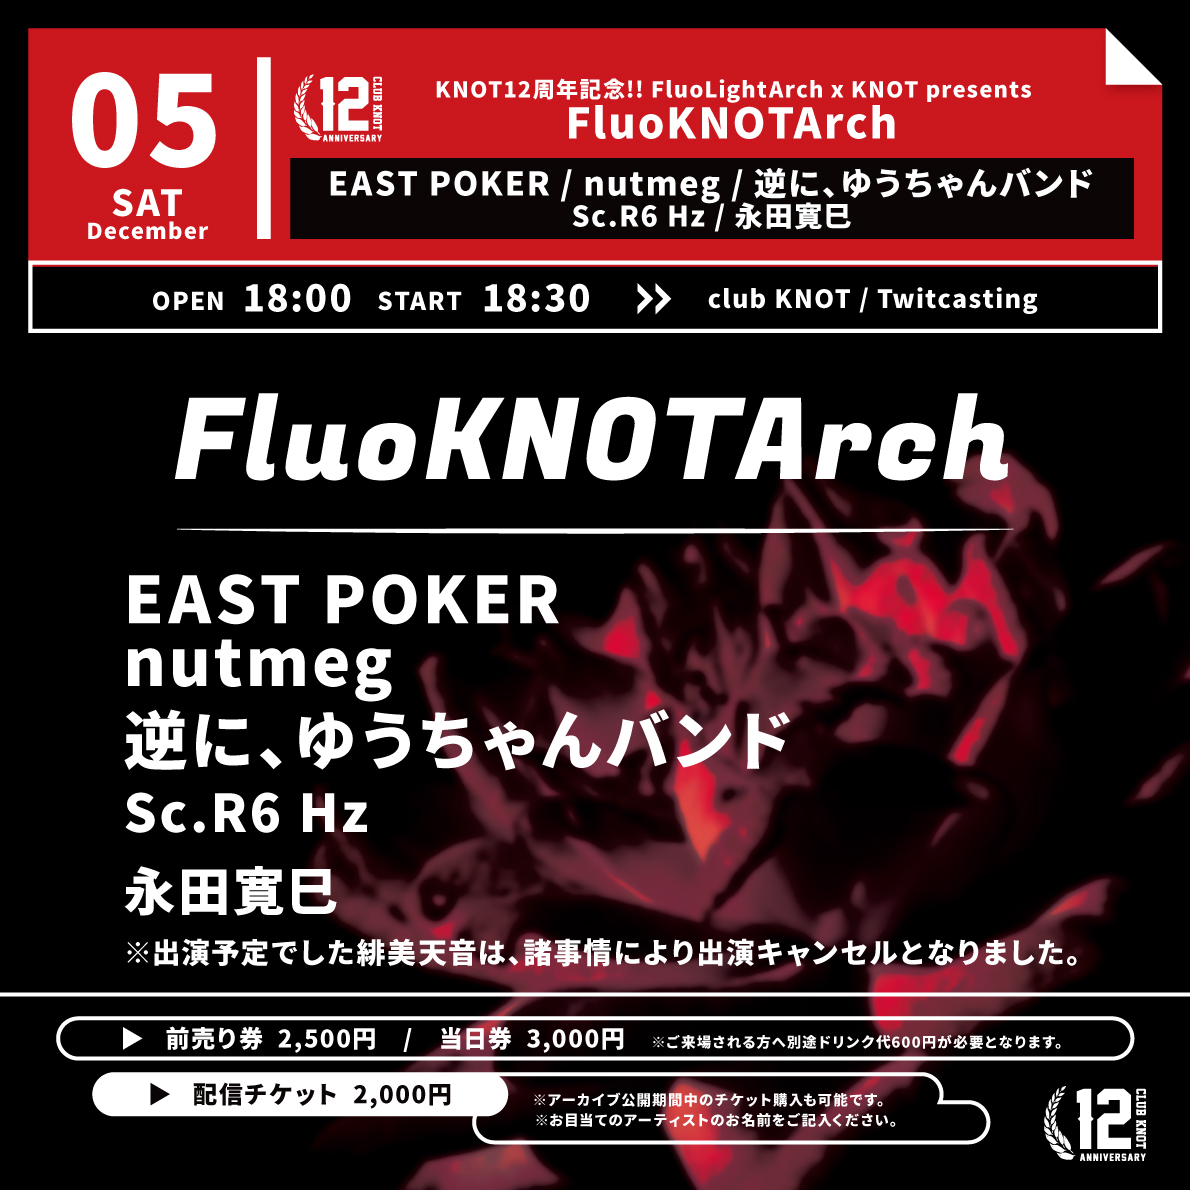 KNOT12周年記念!! FluoLightArch x KNOT presents